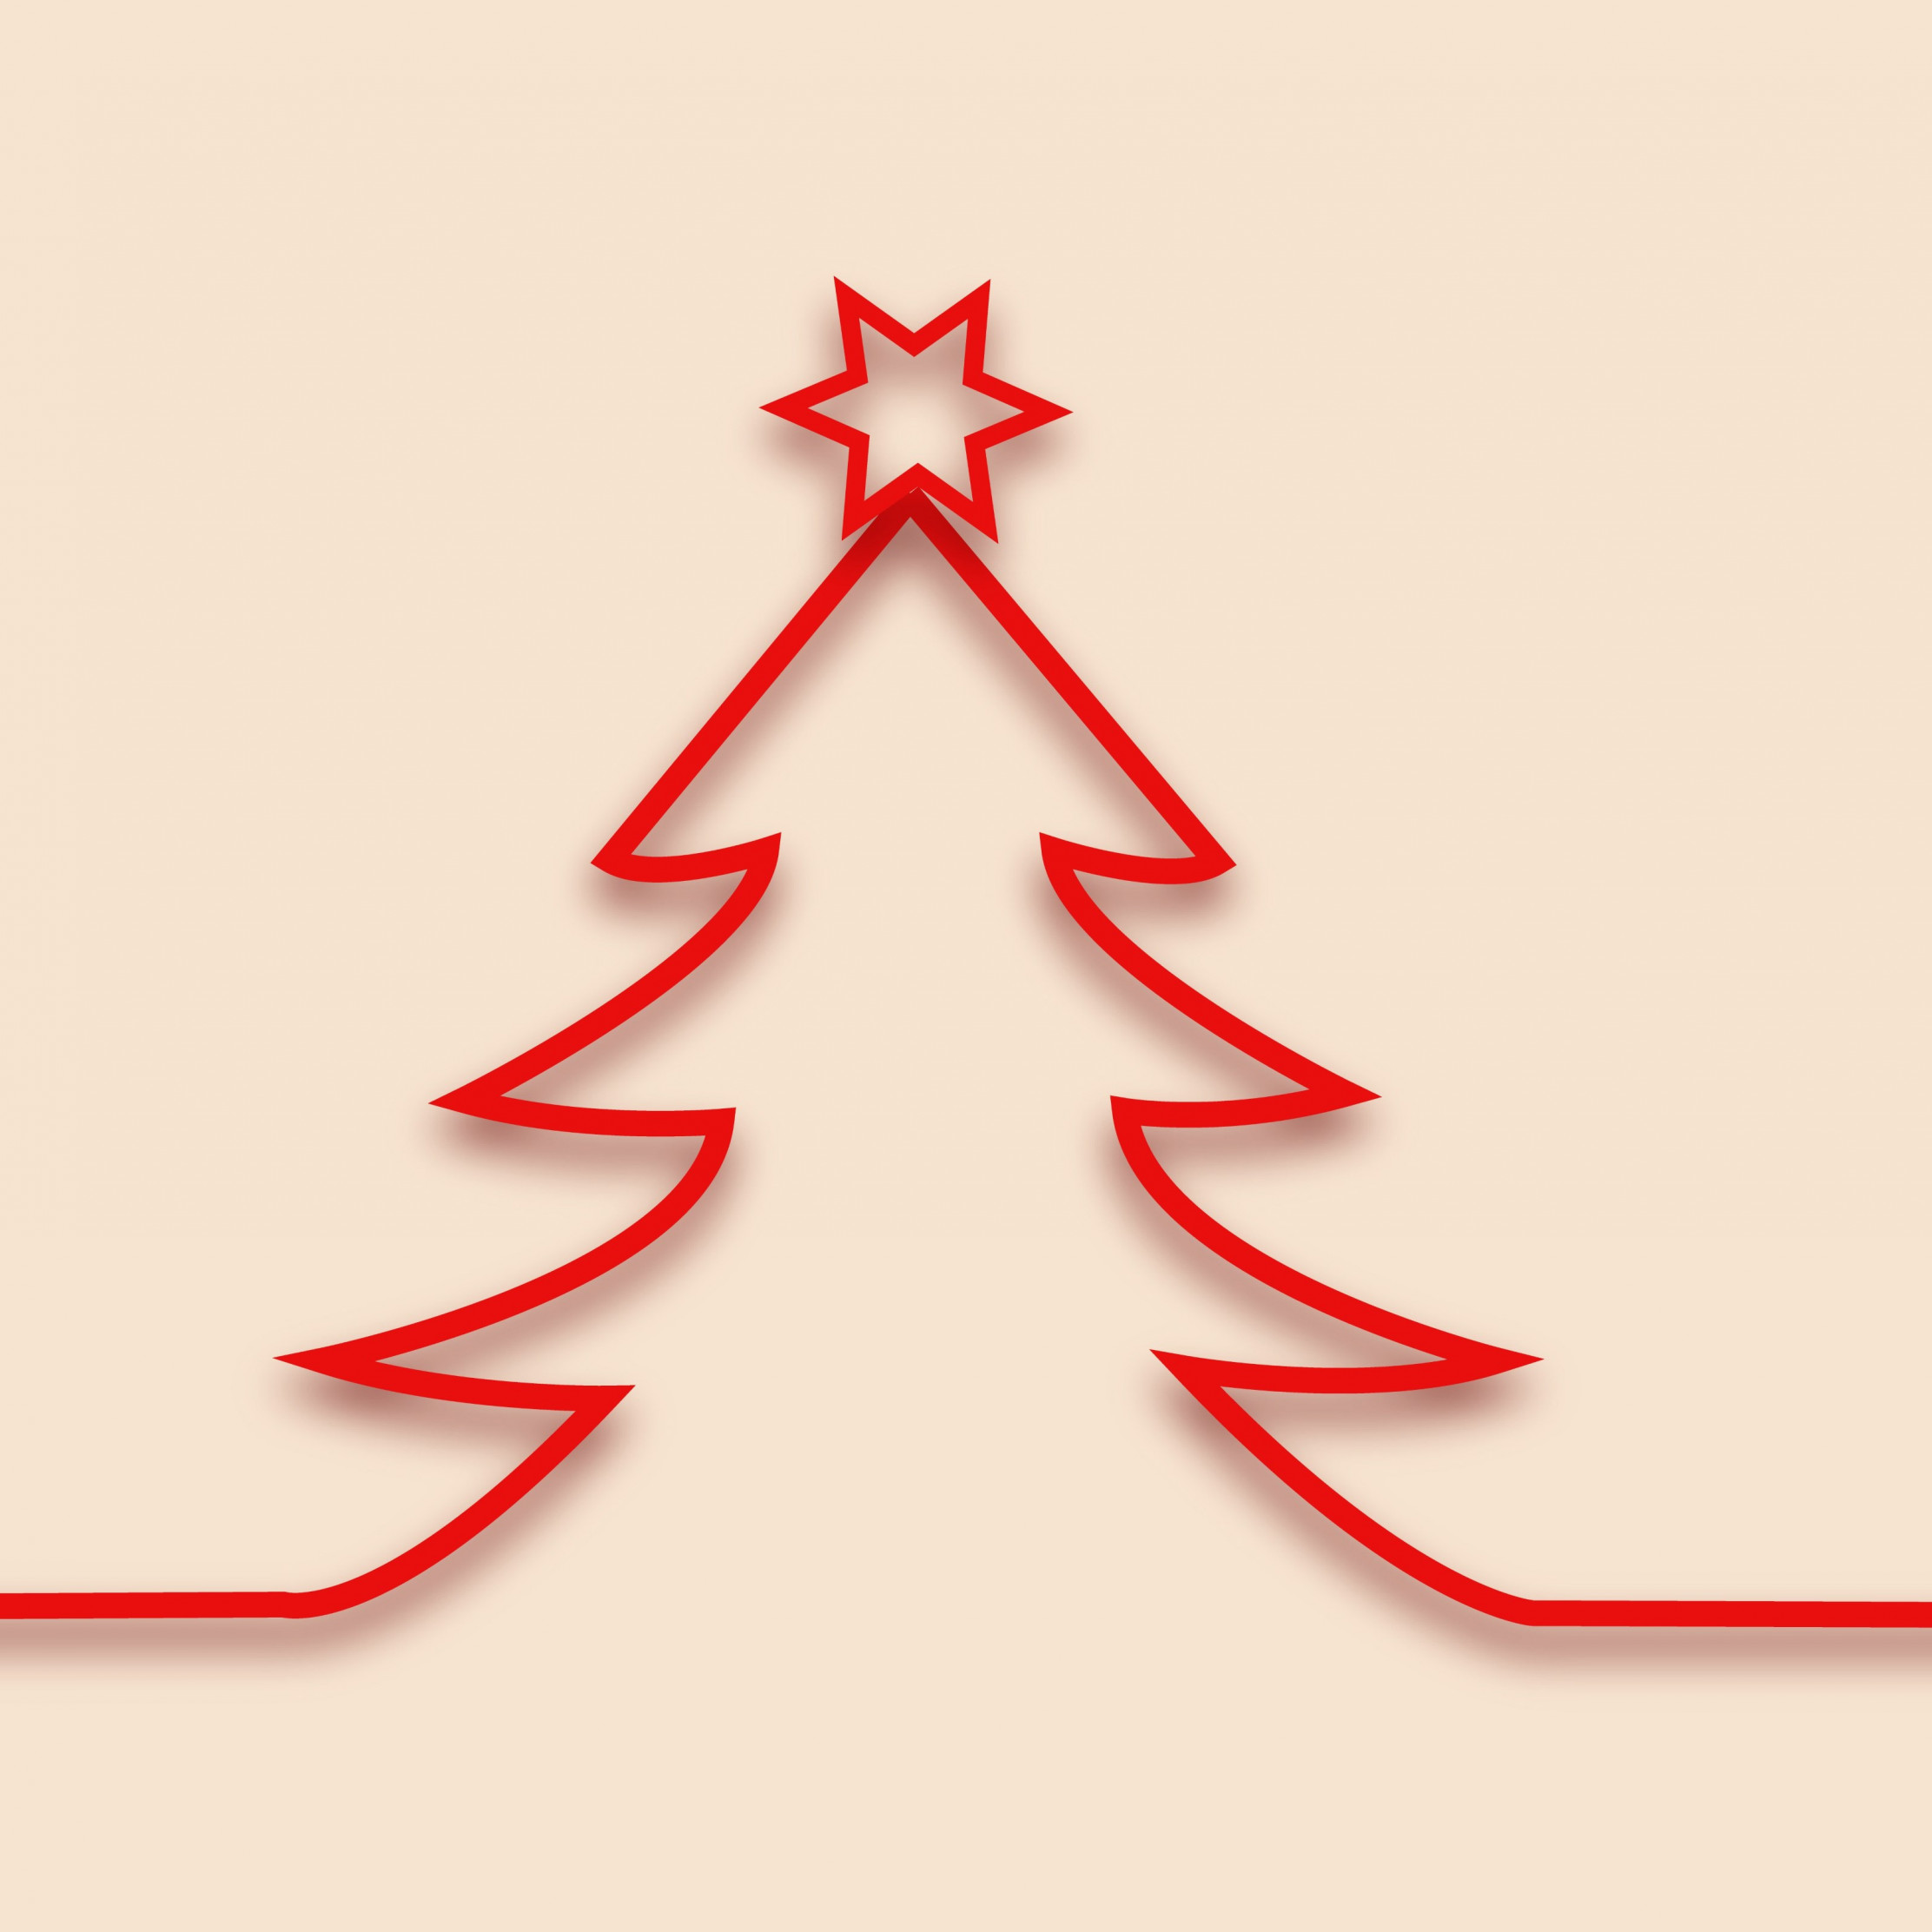 Red minimalistic Christmas tree design wallpaper 2224x2224